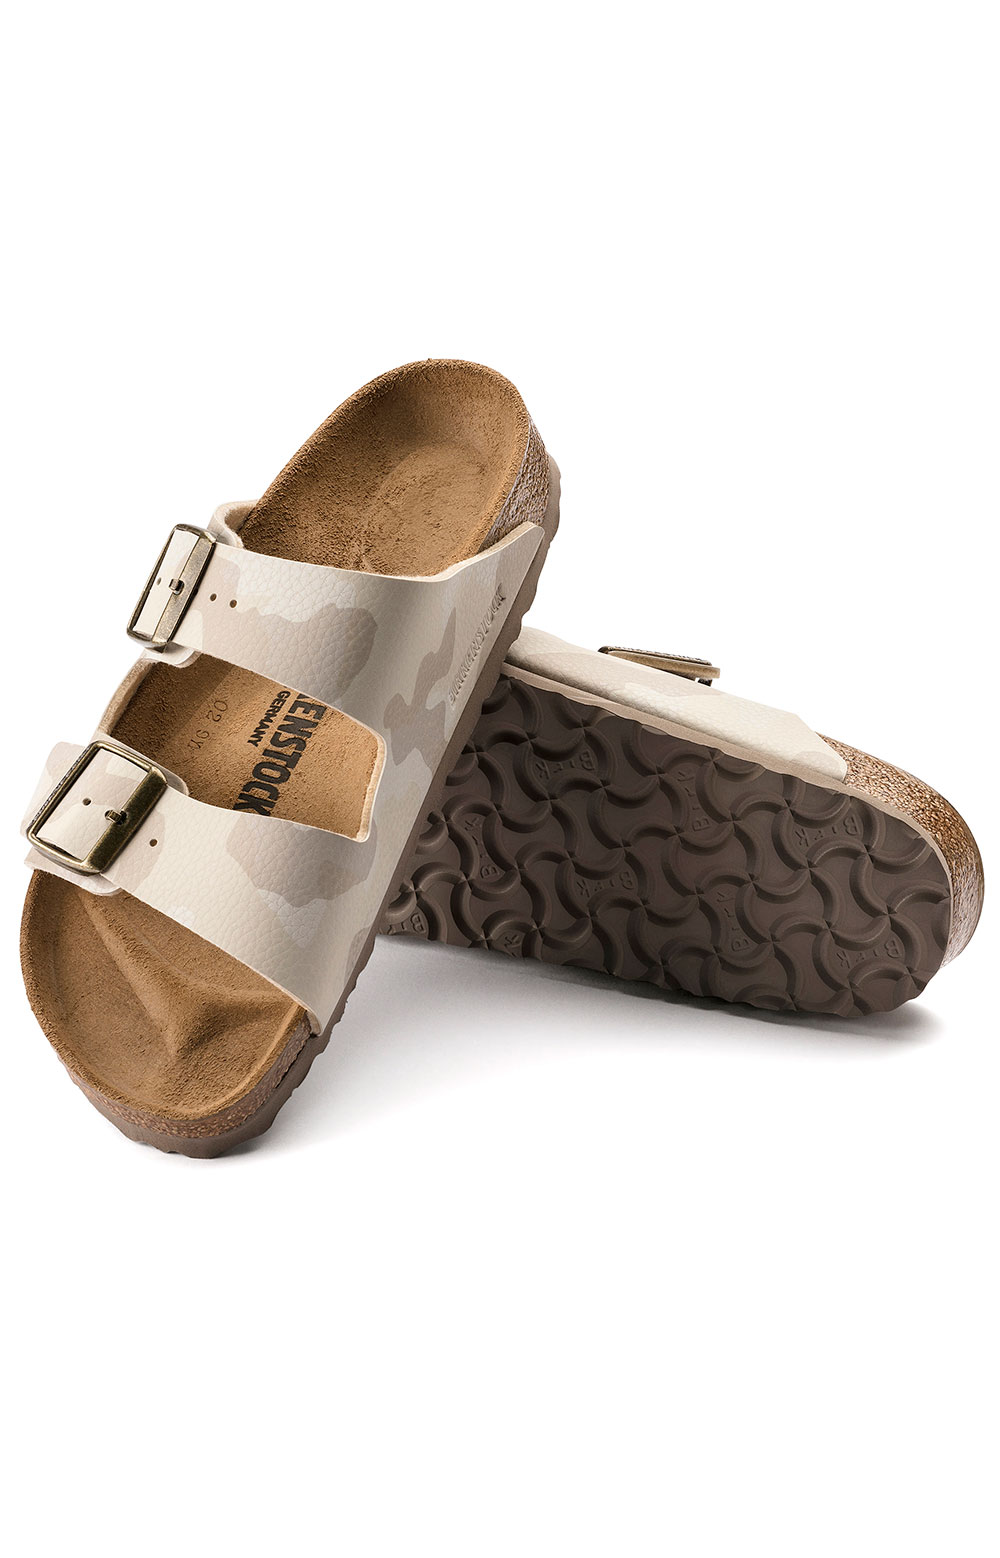 (1016791) Arizona Sandals - Desert Soil Camo Sand 5